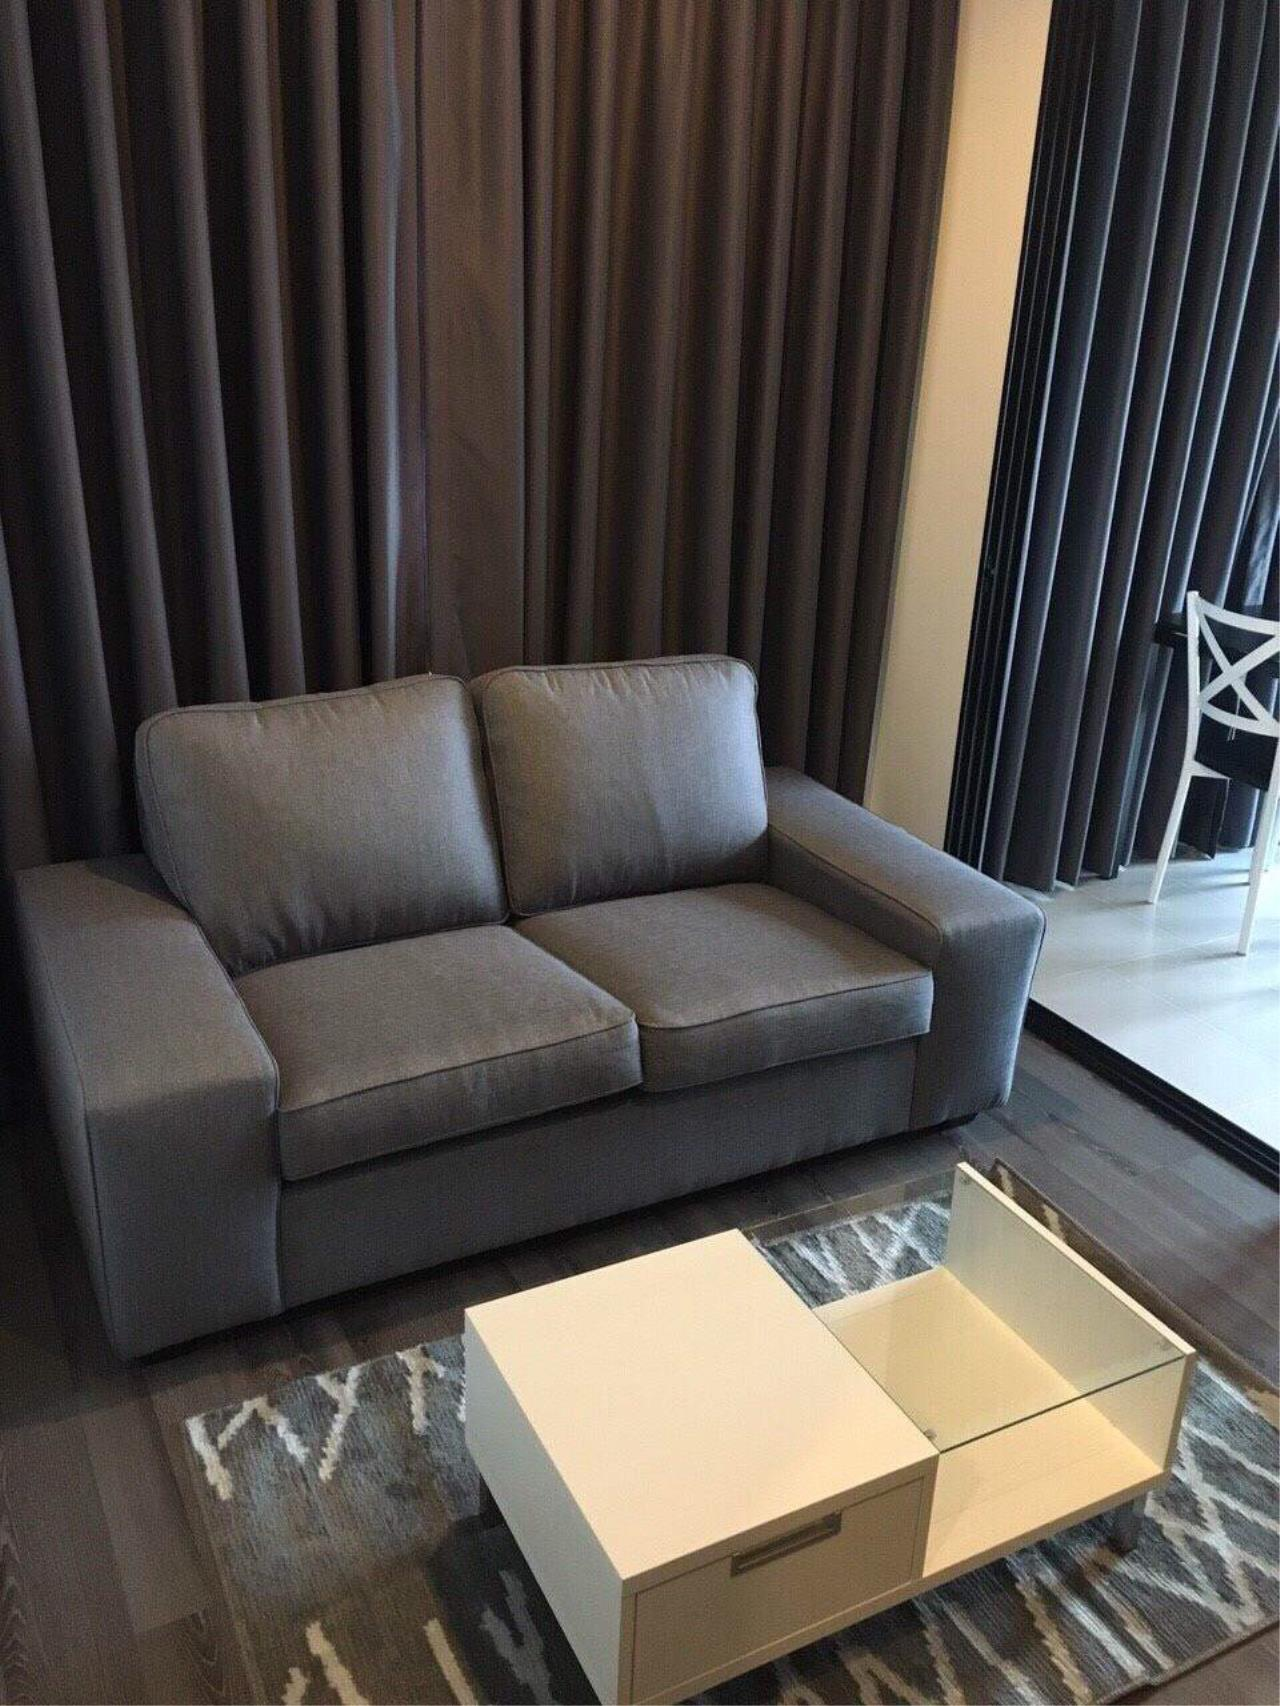 RE/MAX All Star Realty Agency's Basepark East One-Bed full furnished for rent 15,000 Baht neg (BTS On Nut) 5